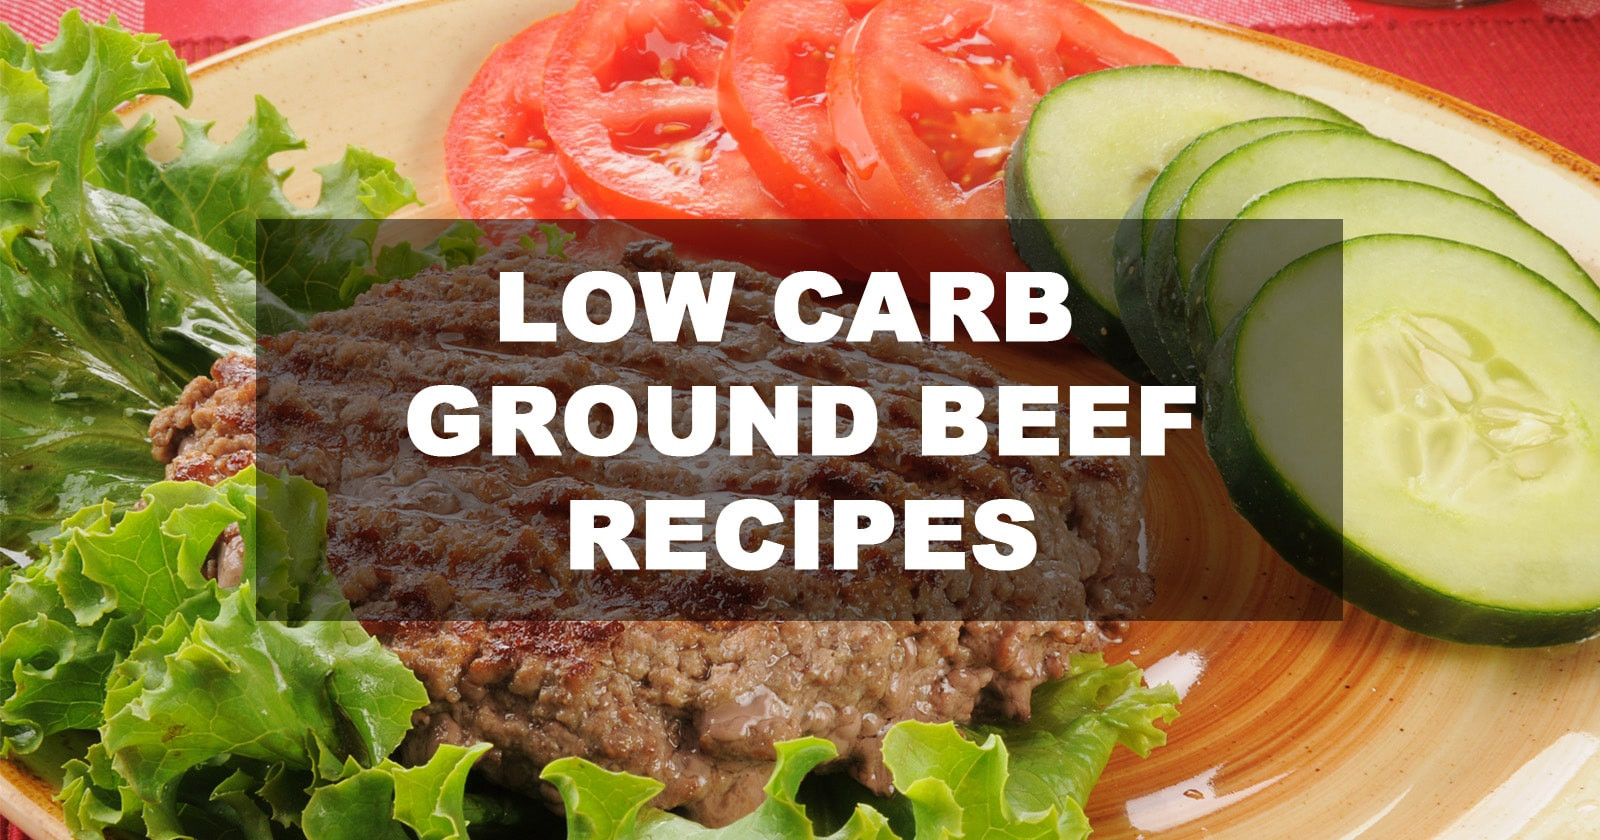 Low Carb Dinner With Ground Beef  Keto Diet Recipes With Ground Beef